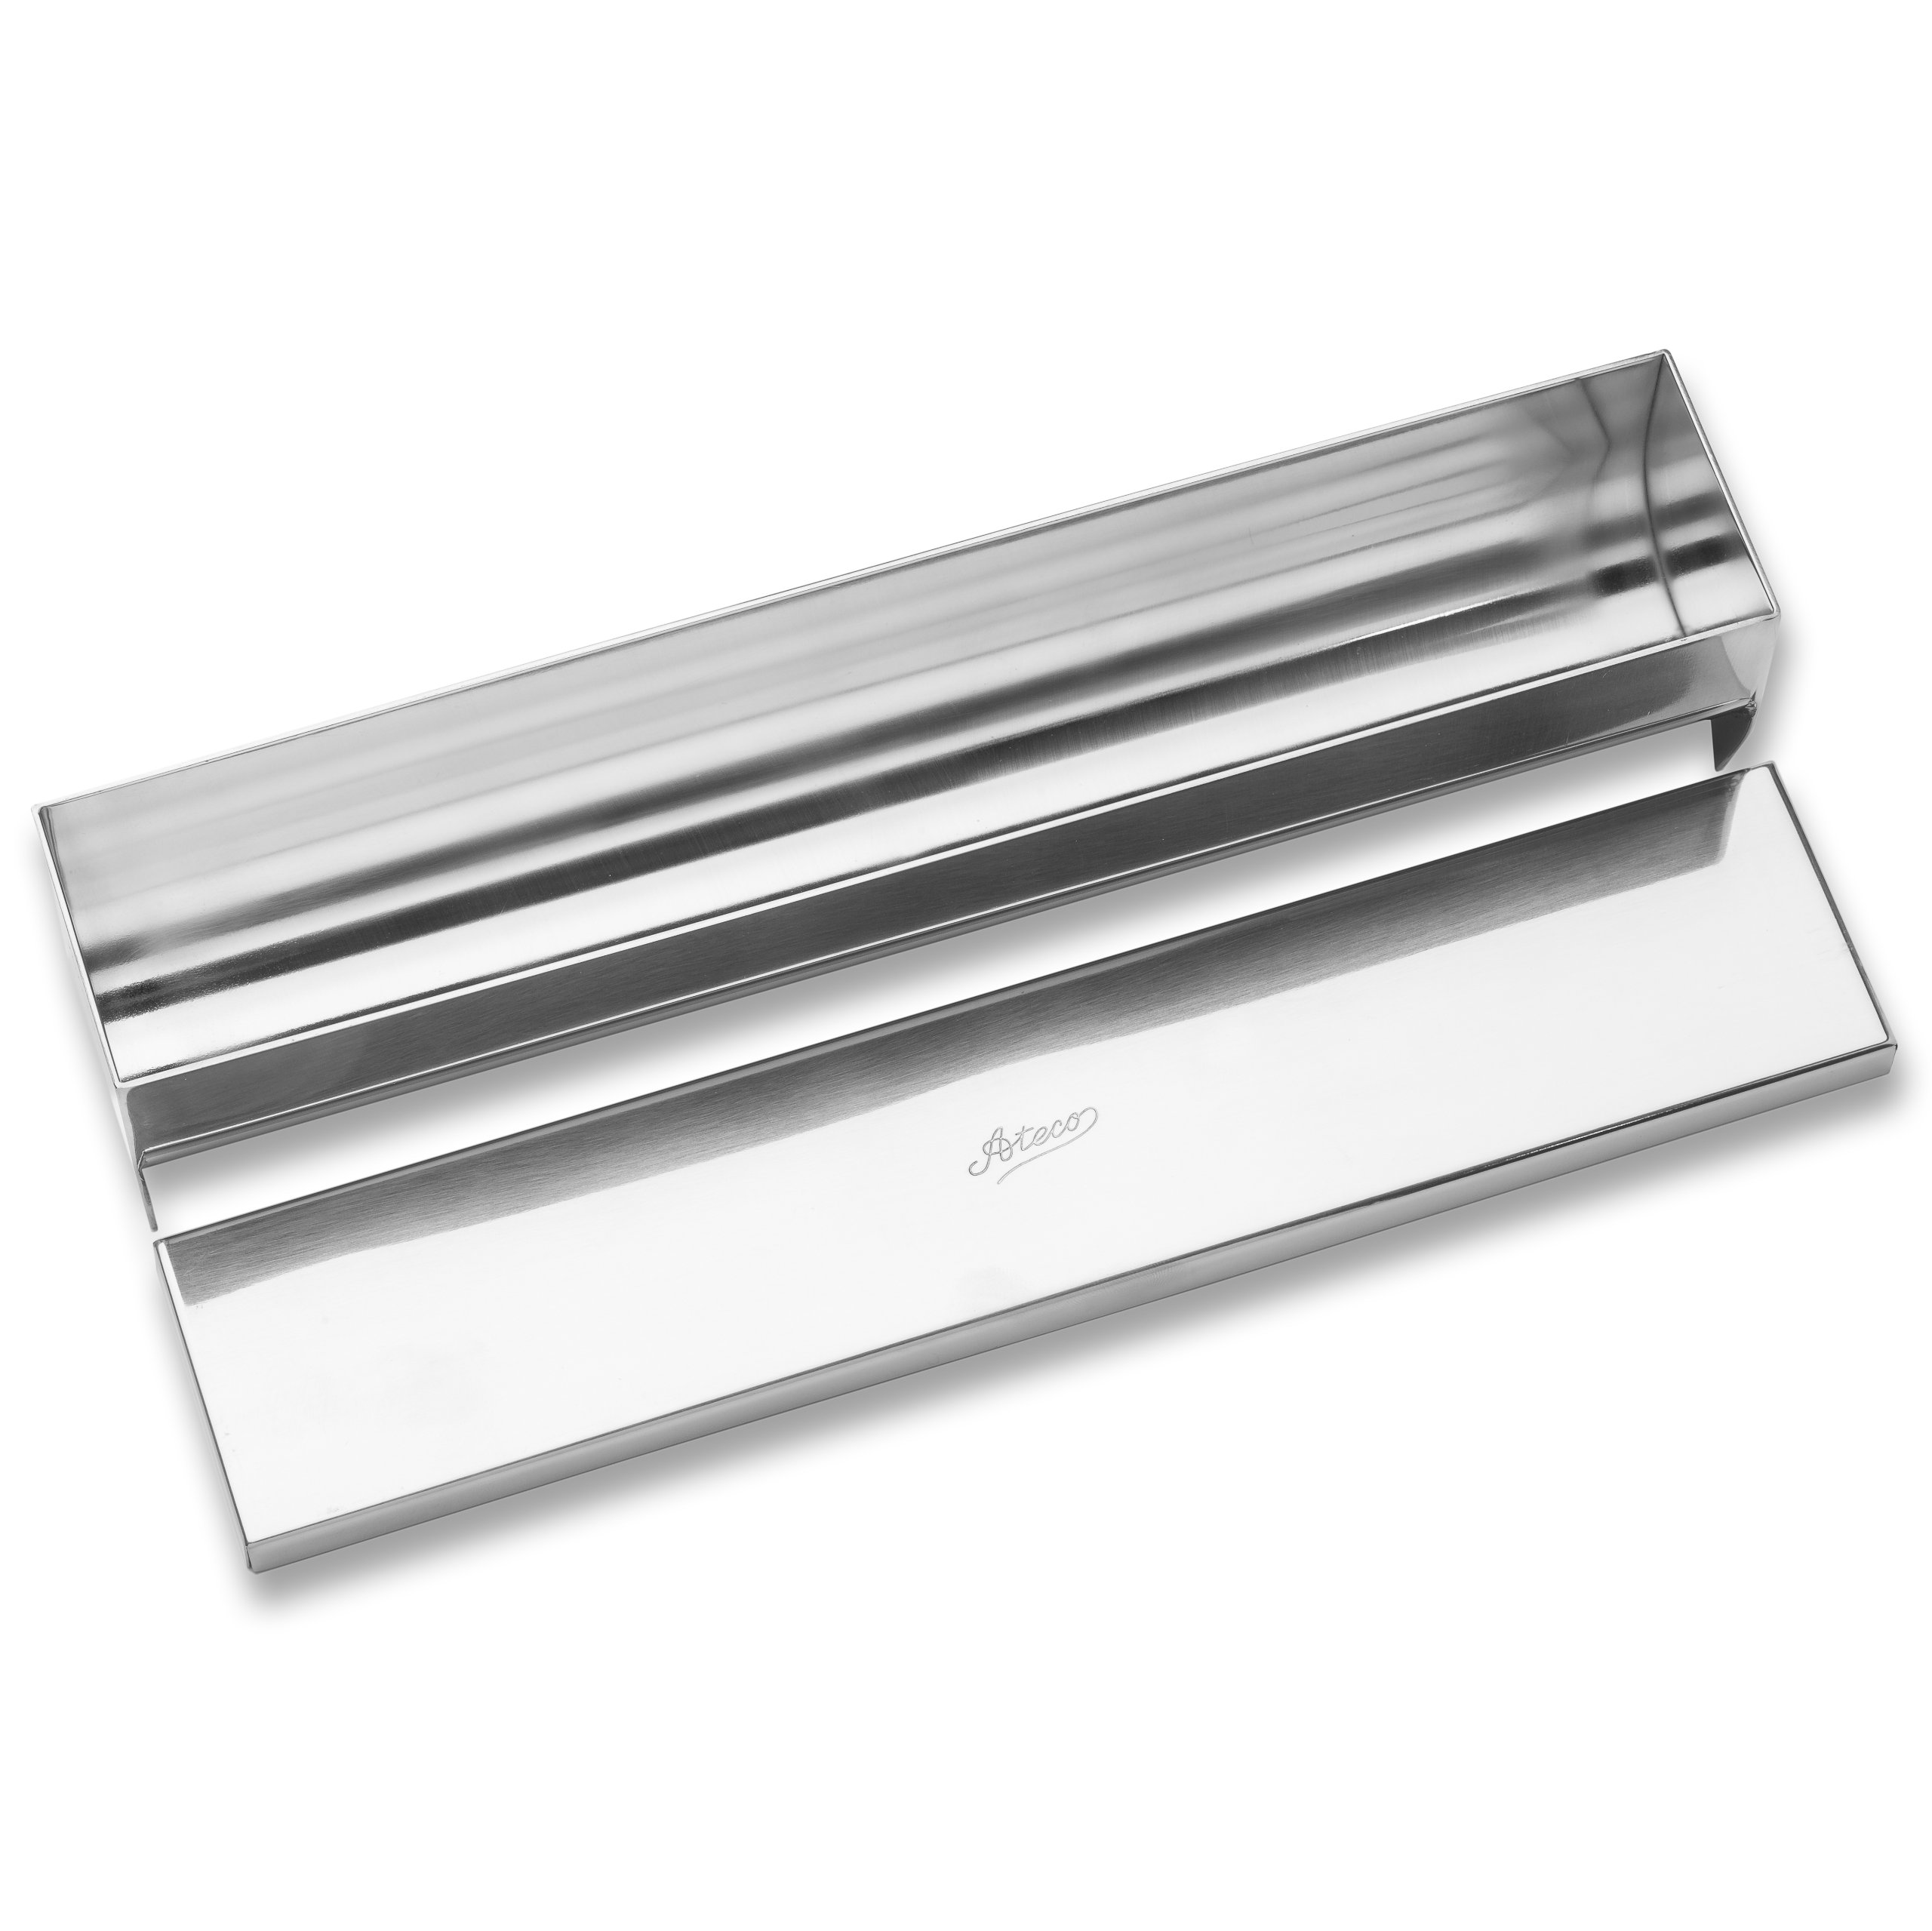 Ateco Rectangular Mold with Cover and Round Bottom, Stainless Steel by Ateco